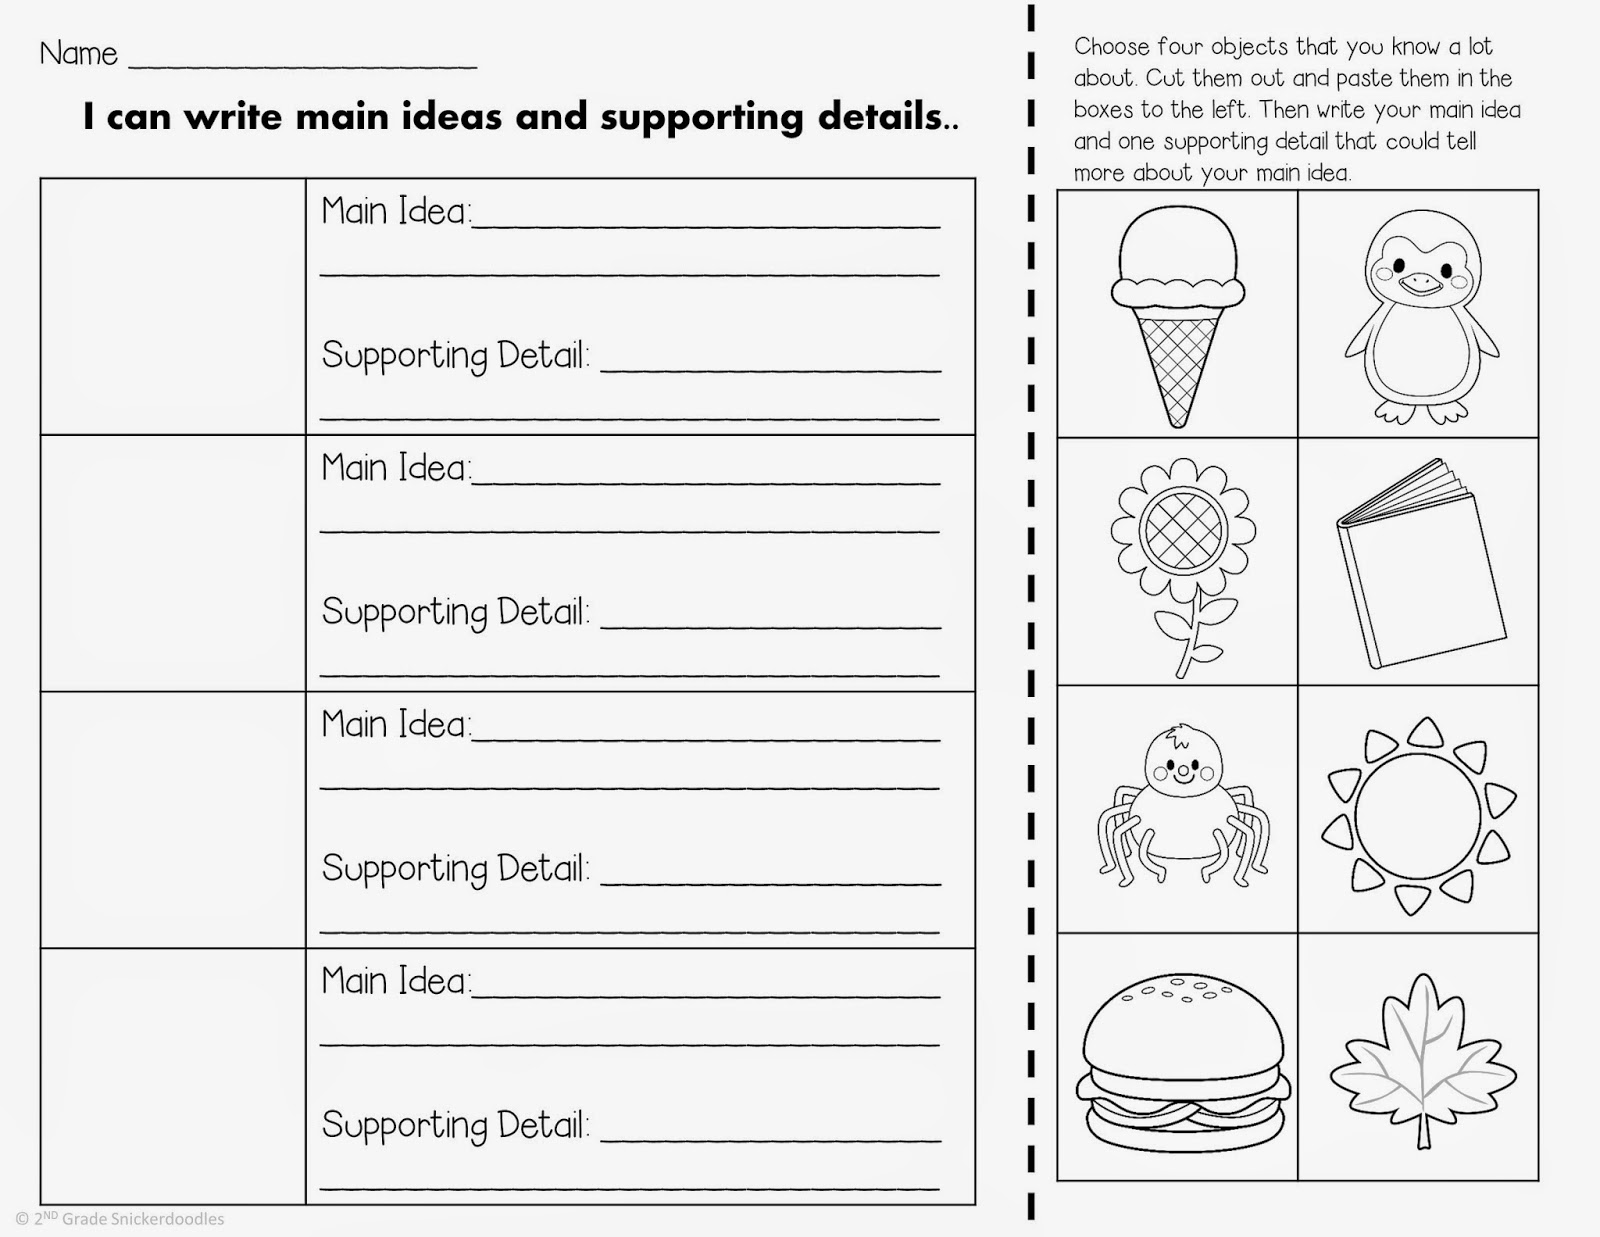 Worksheet Main Idea Supporting Details Worksheet Grass